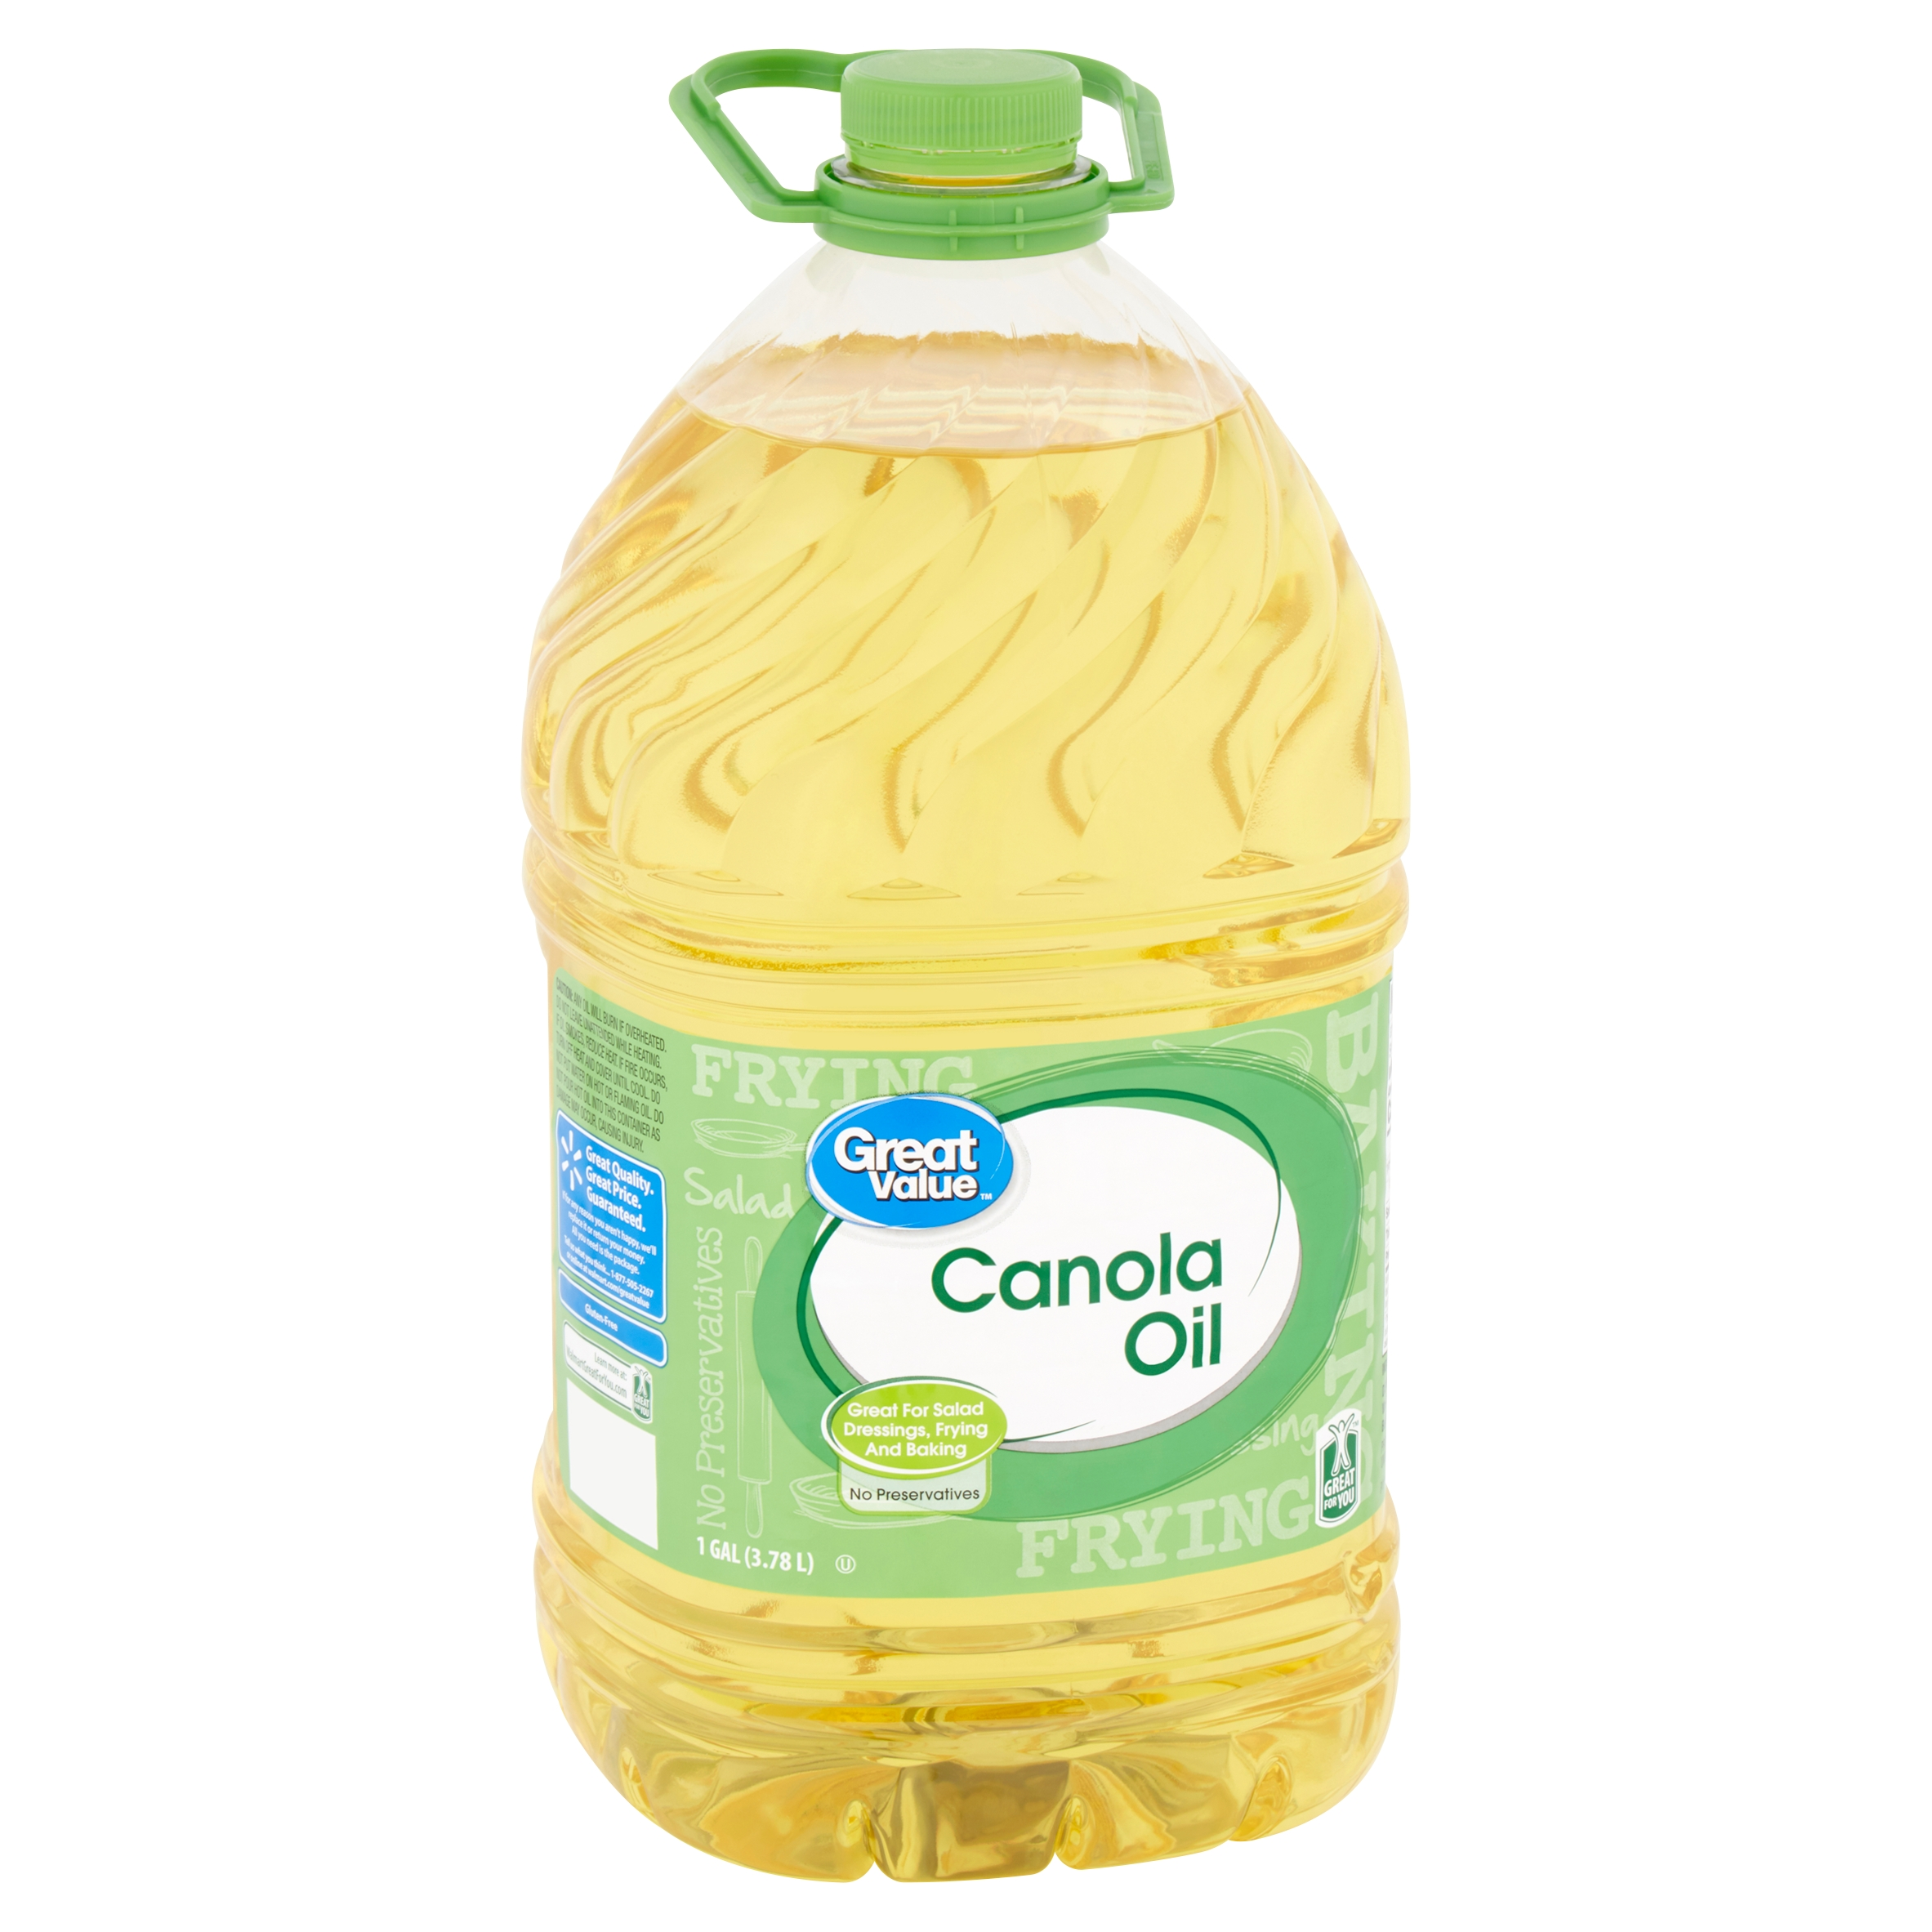 Great Value Canola Oil, 1 gal